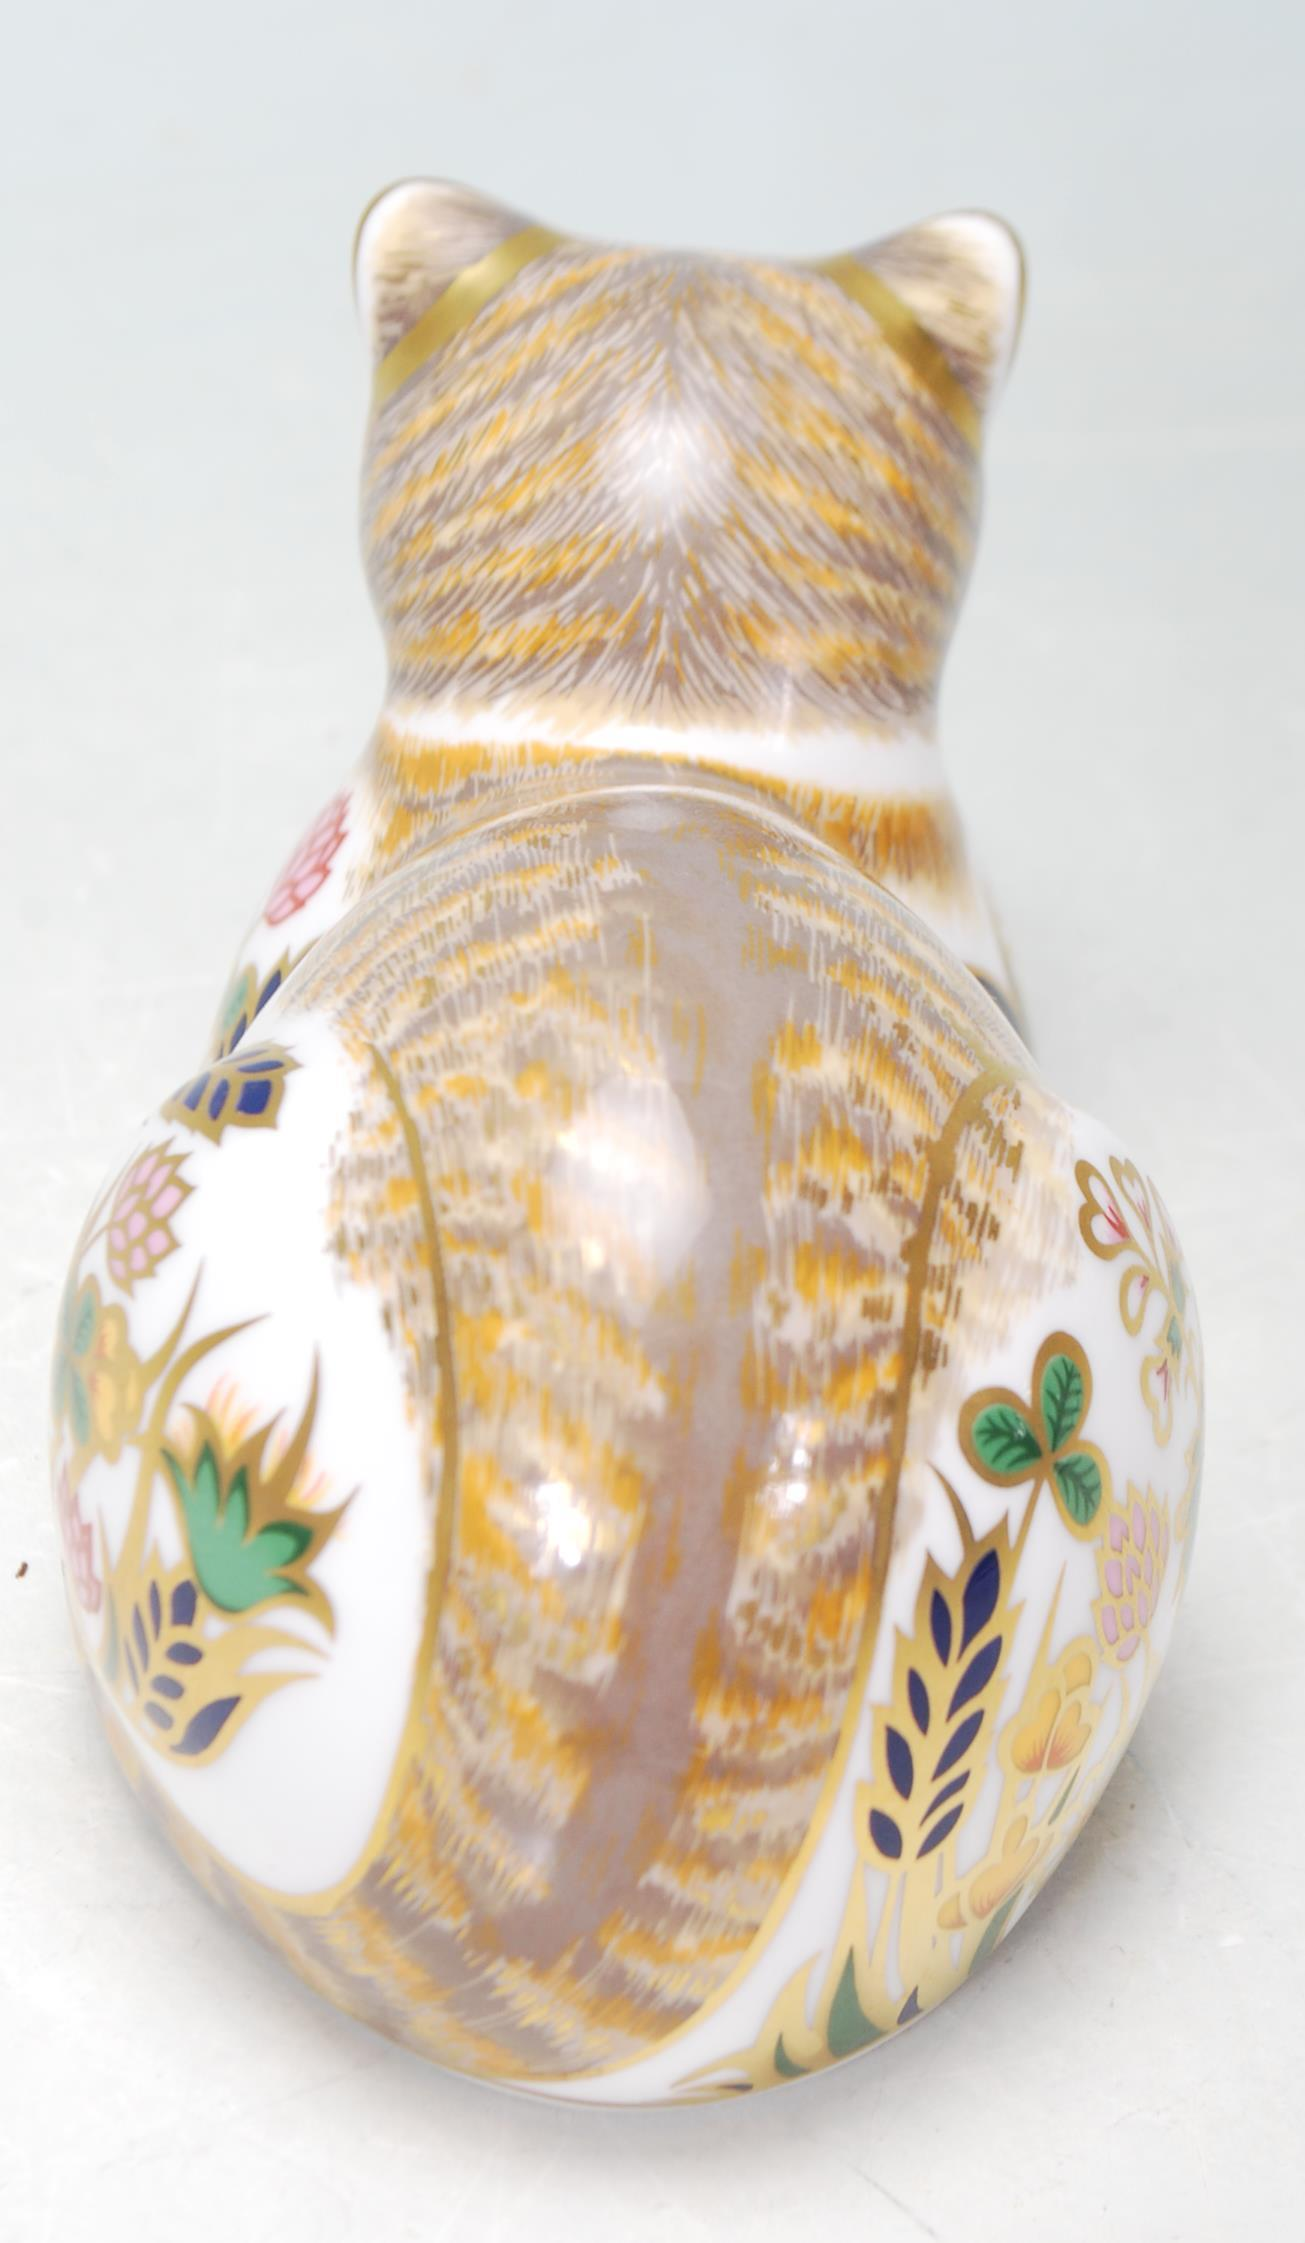 ROYAL CROWN DERBY COTTAGE CAT PAPERWEIGHT WITH GOLD STOPPER - Image 4 of 5